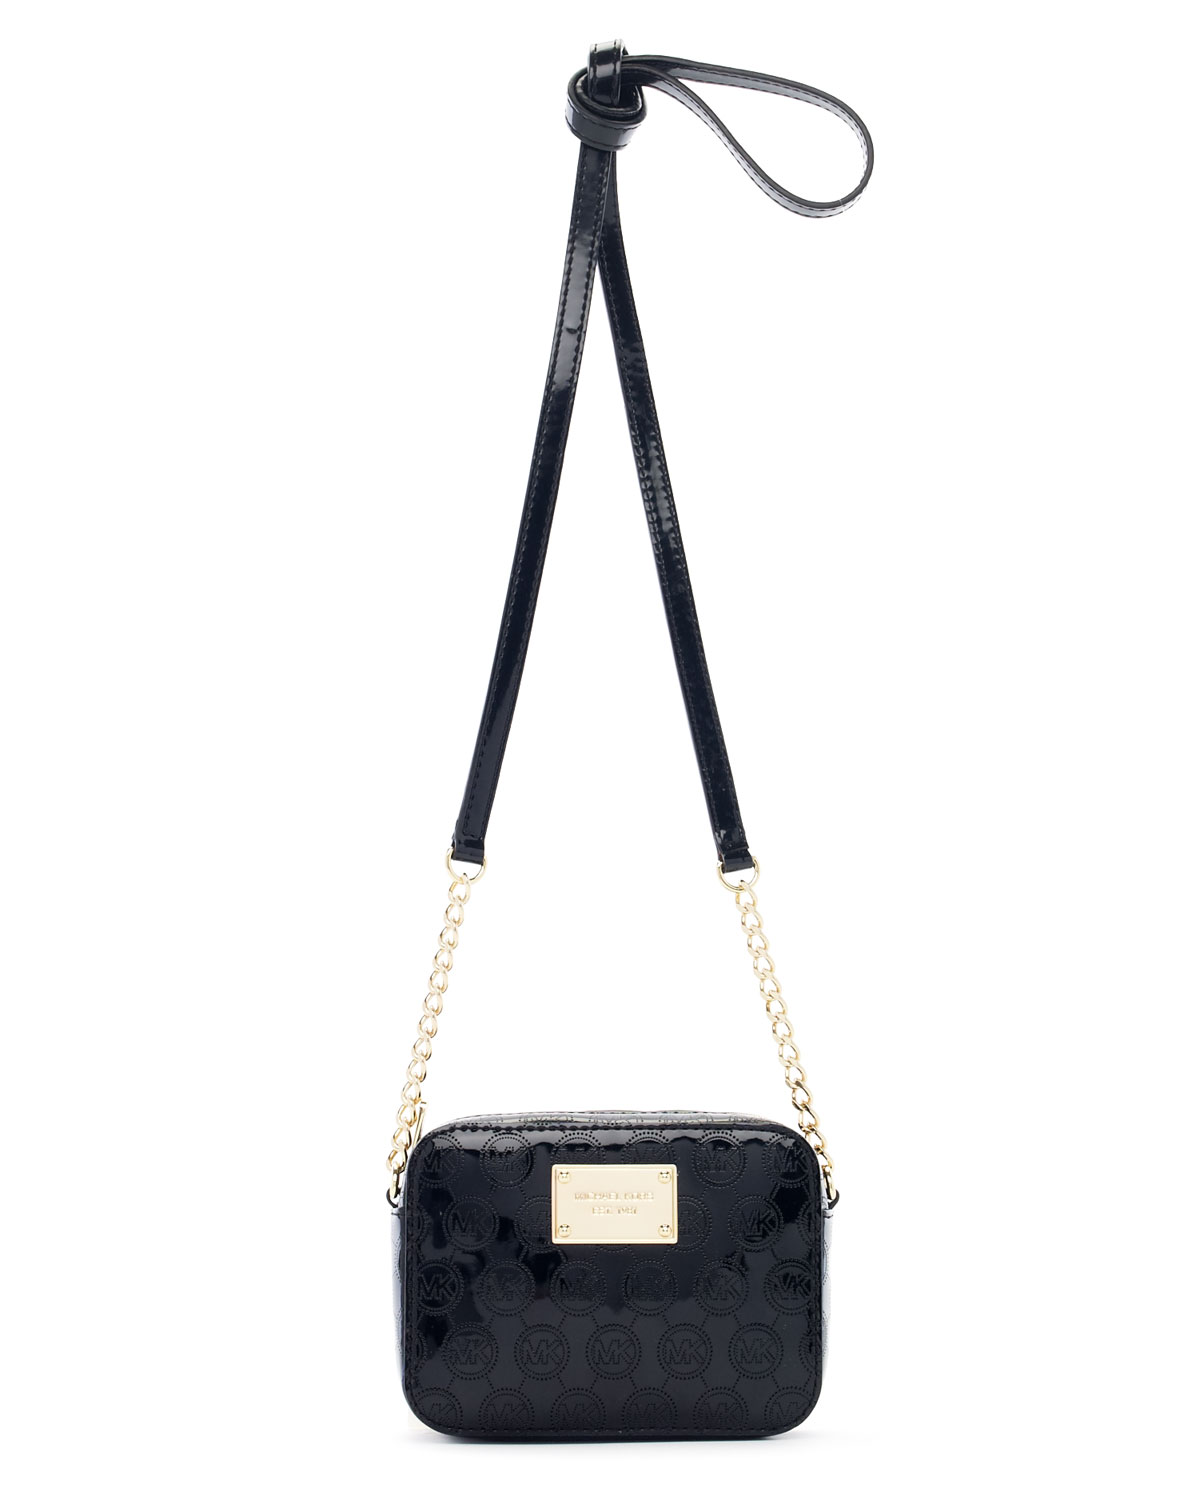 32e0686188f6 Lyst - Michael Kors Jet Set Monogram Crossbody in Black